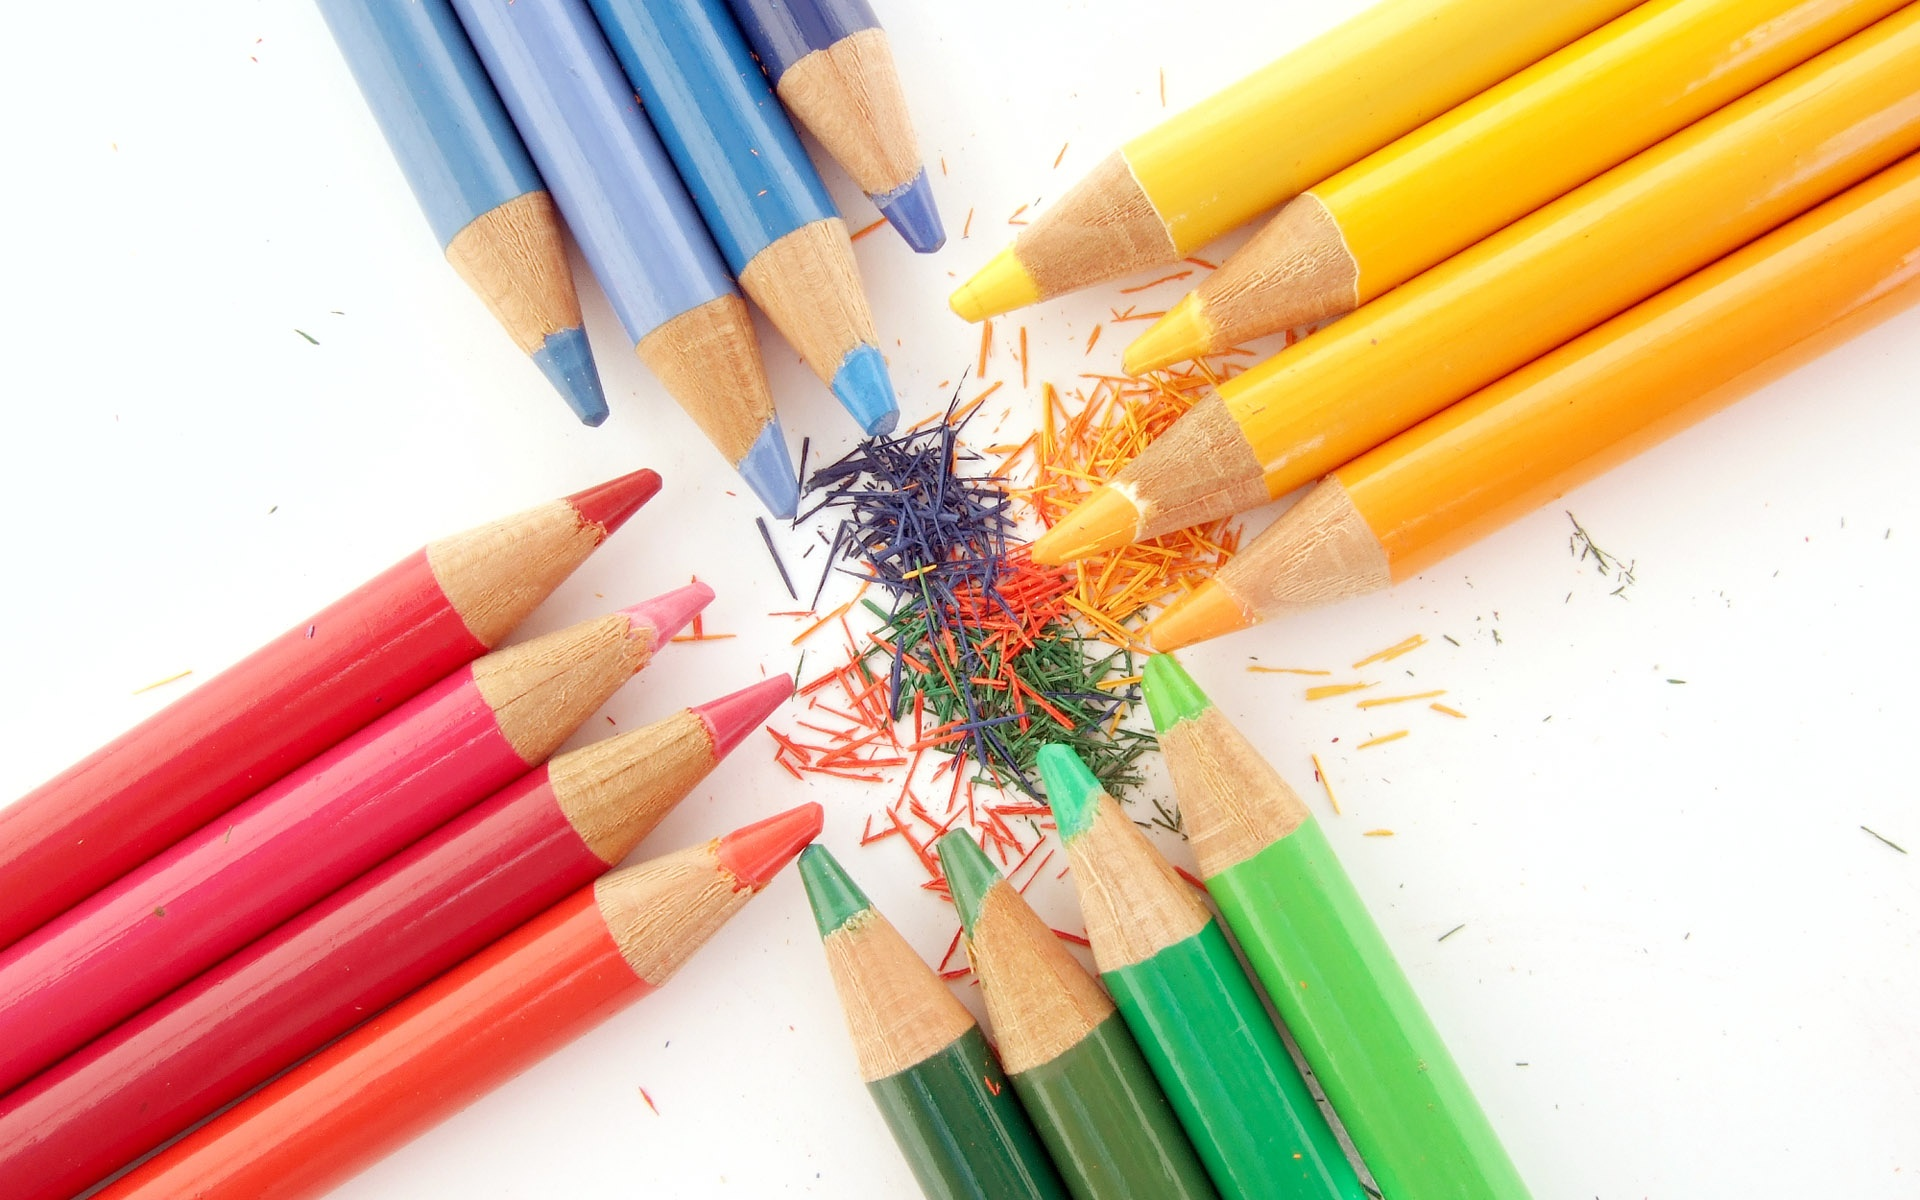 Colored Pencils with Colorful Designs